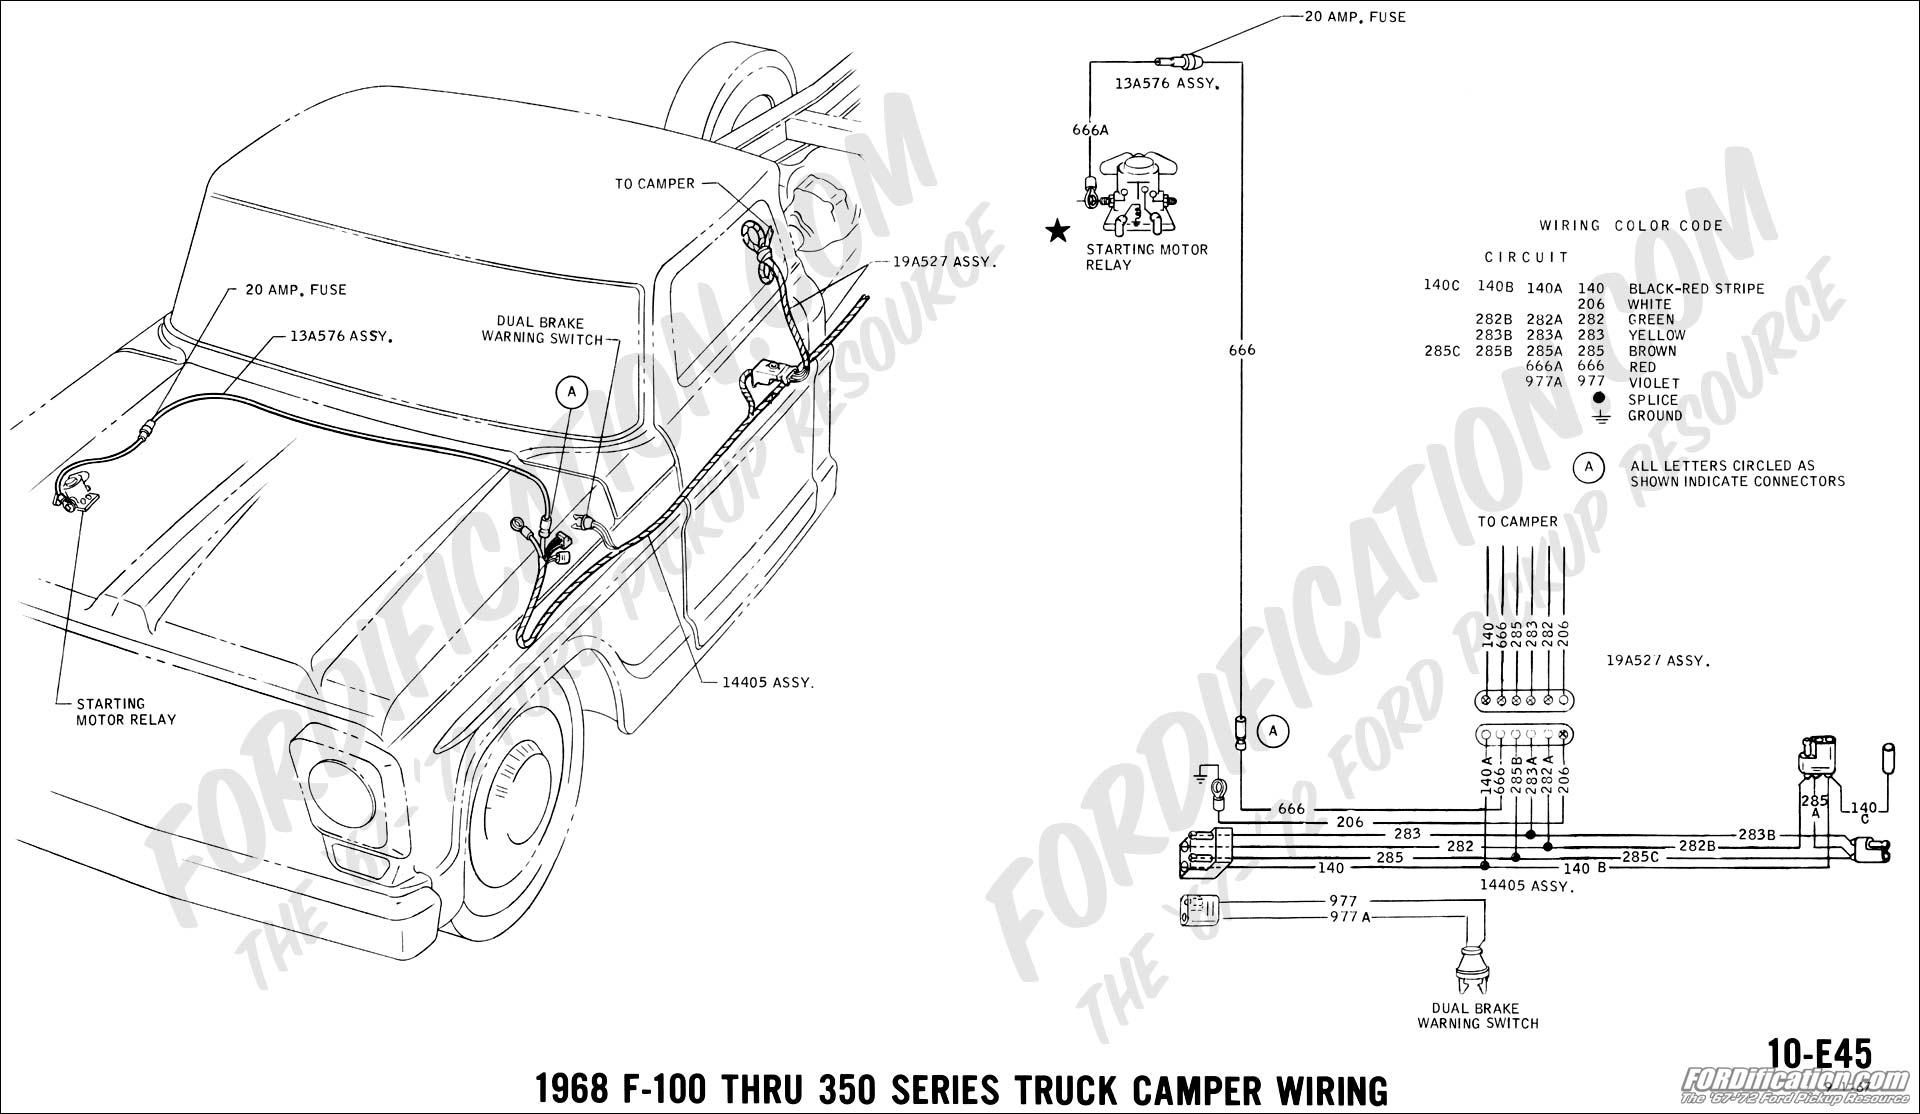 68 47 ford truck technical drawings and schematics section h wiring truck camper wire harness at bayanpartner.co